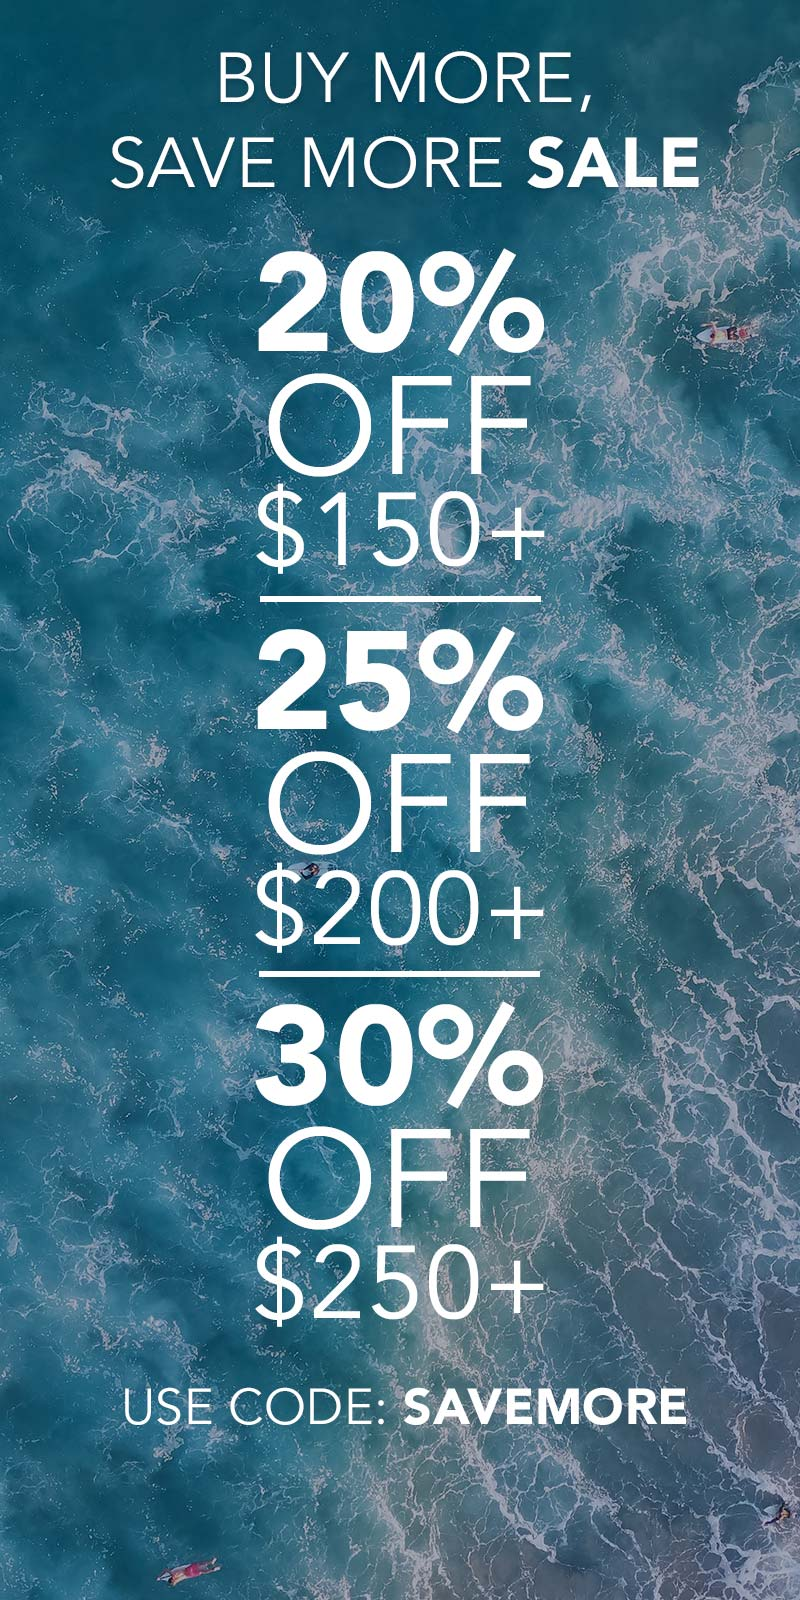 Buy More, Save More Sale: 20% off $150+, 25% off #200+, 30% off $250+. Use Code: SAVEMORE